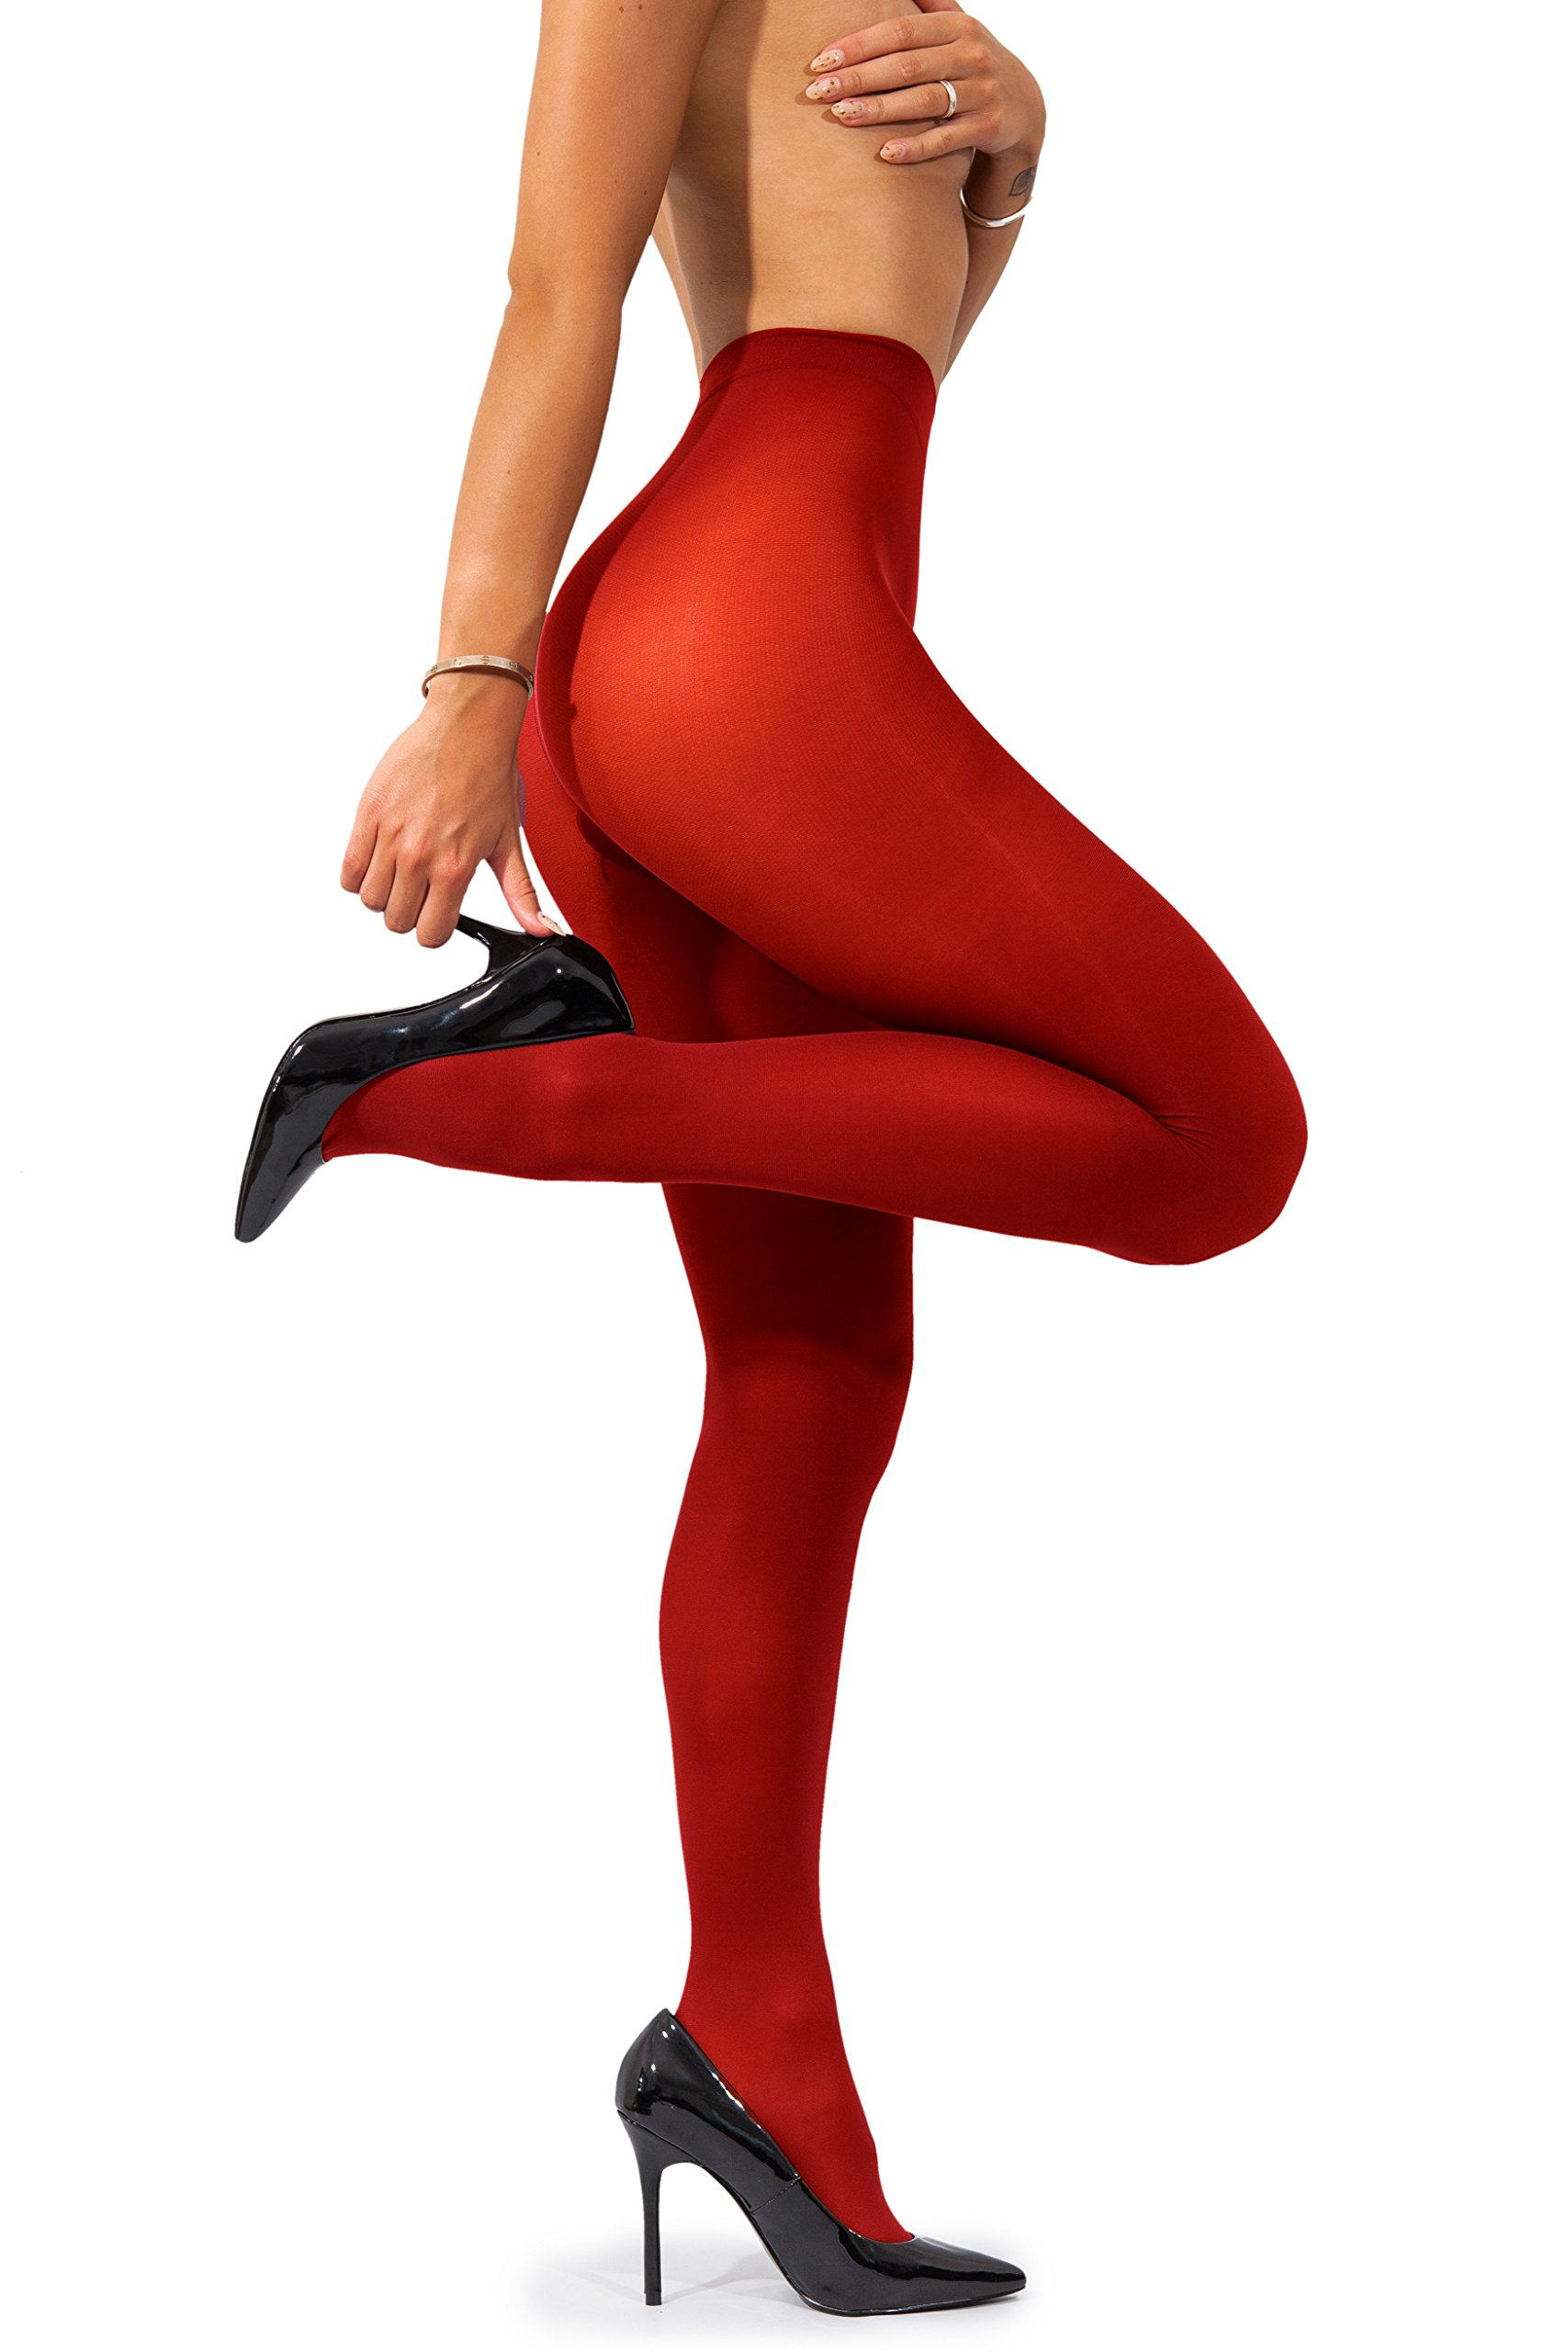 90b21311fd502 sofsy Opaque Microfibre Tights for Women - Invisibly Reinforced Opaque  Brief Pantyhose 40Den [Made In Italy] Red 4 - Large - MICRO-TIGHTS-SATIN-40-RED4  ...